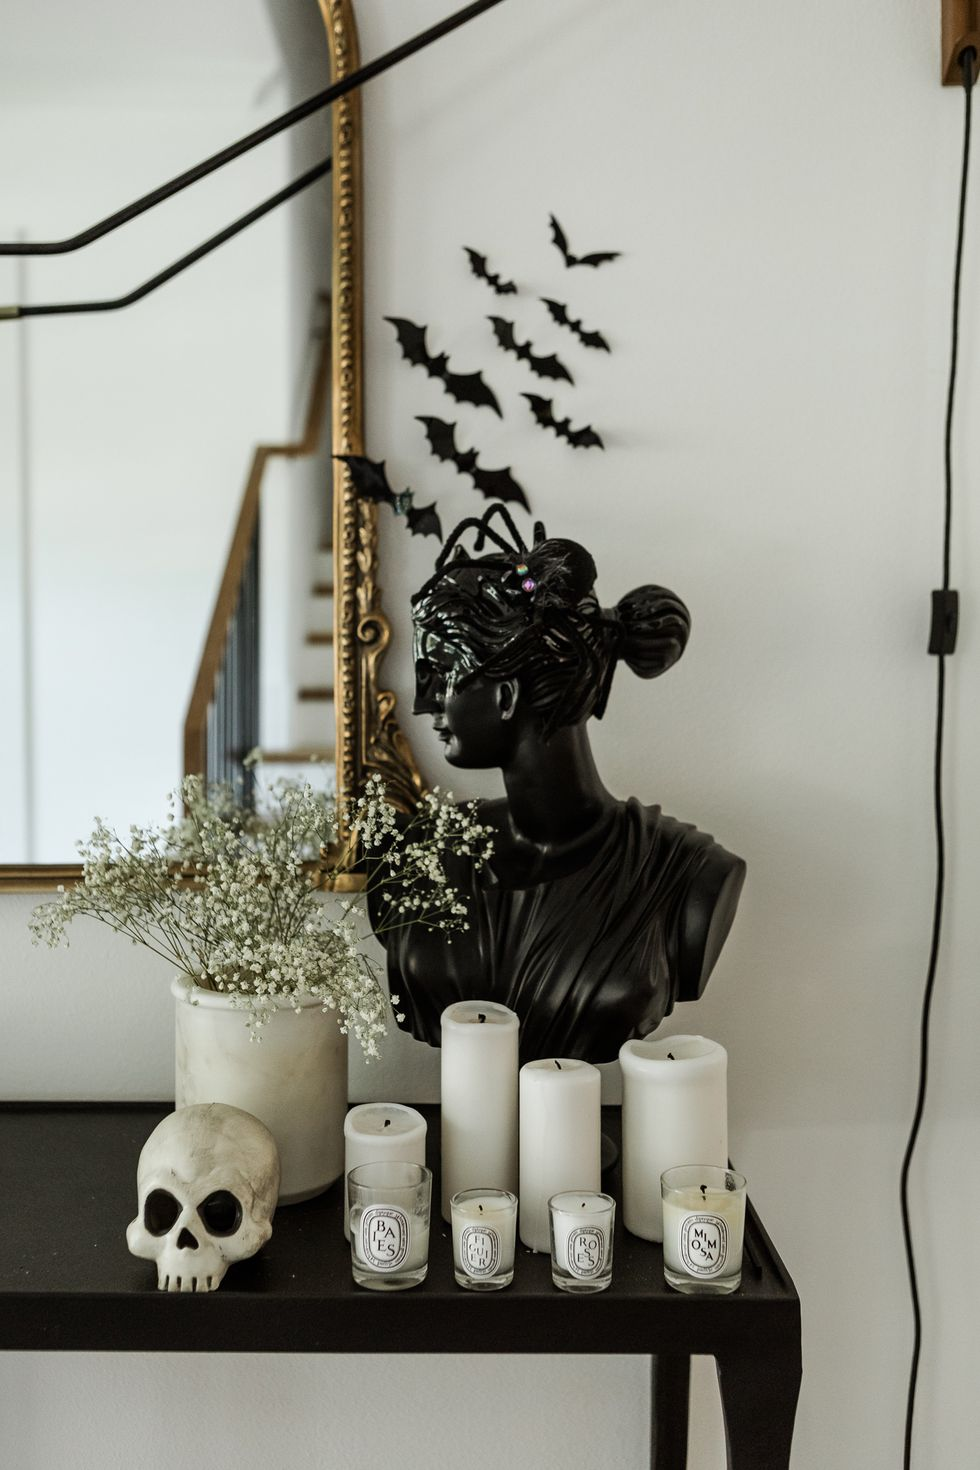 10 Stylish And Modern Halloween Decor Ideas For Your Home_1 halloween decor ideas 10 Stylish And Modern Halloween Decor Ideas For Your Home 10 Stylish And Modern Halloween Decor Ideas For Your Home 1